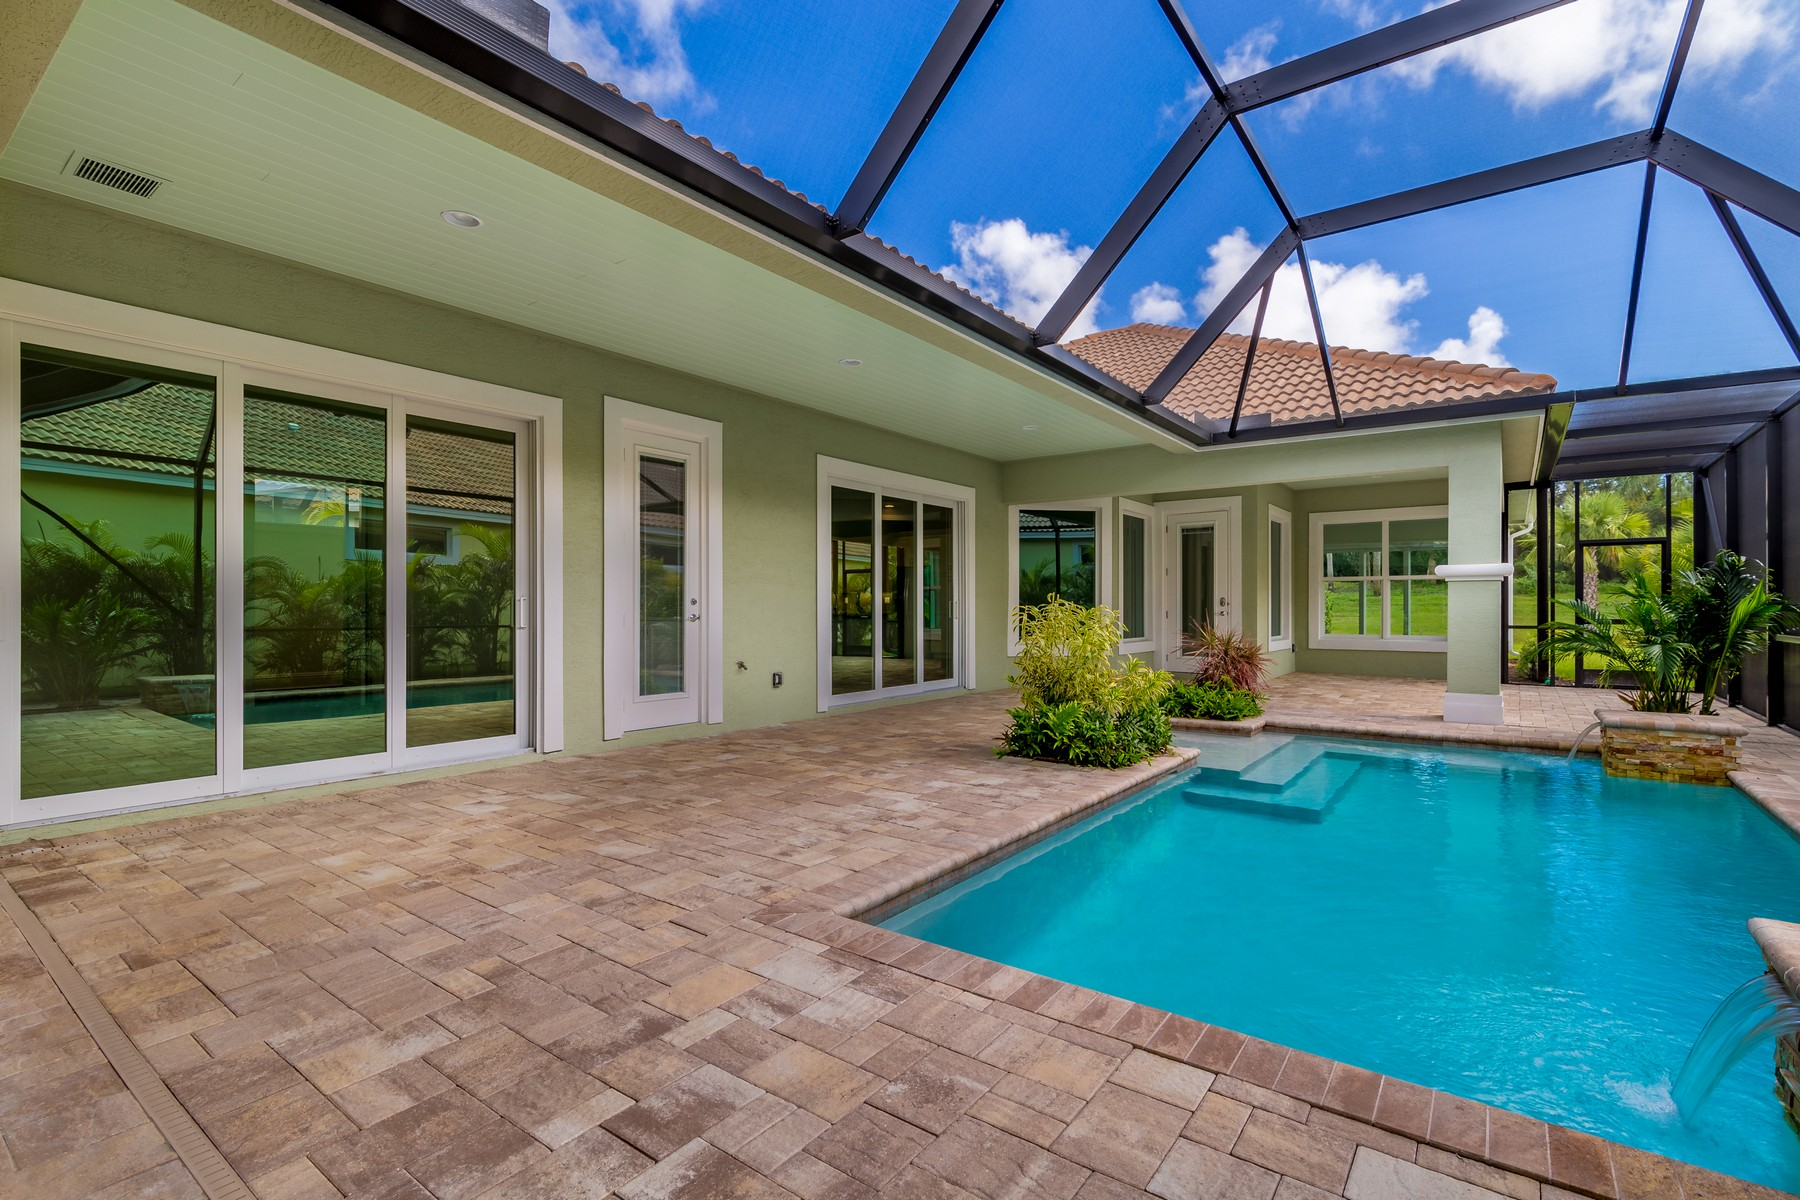 Single Family Homes for Sale at Private Courtyard Pool Home 2135 Falls Circle Vero Beach, Florida 32963 United States